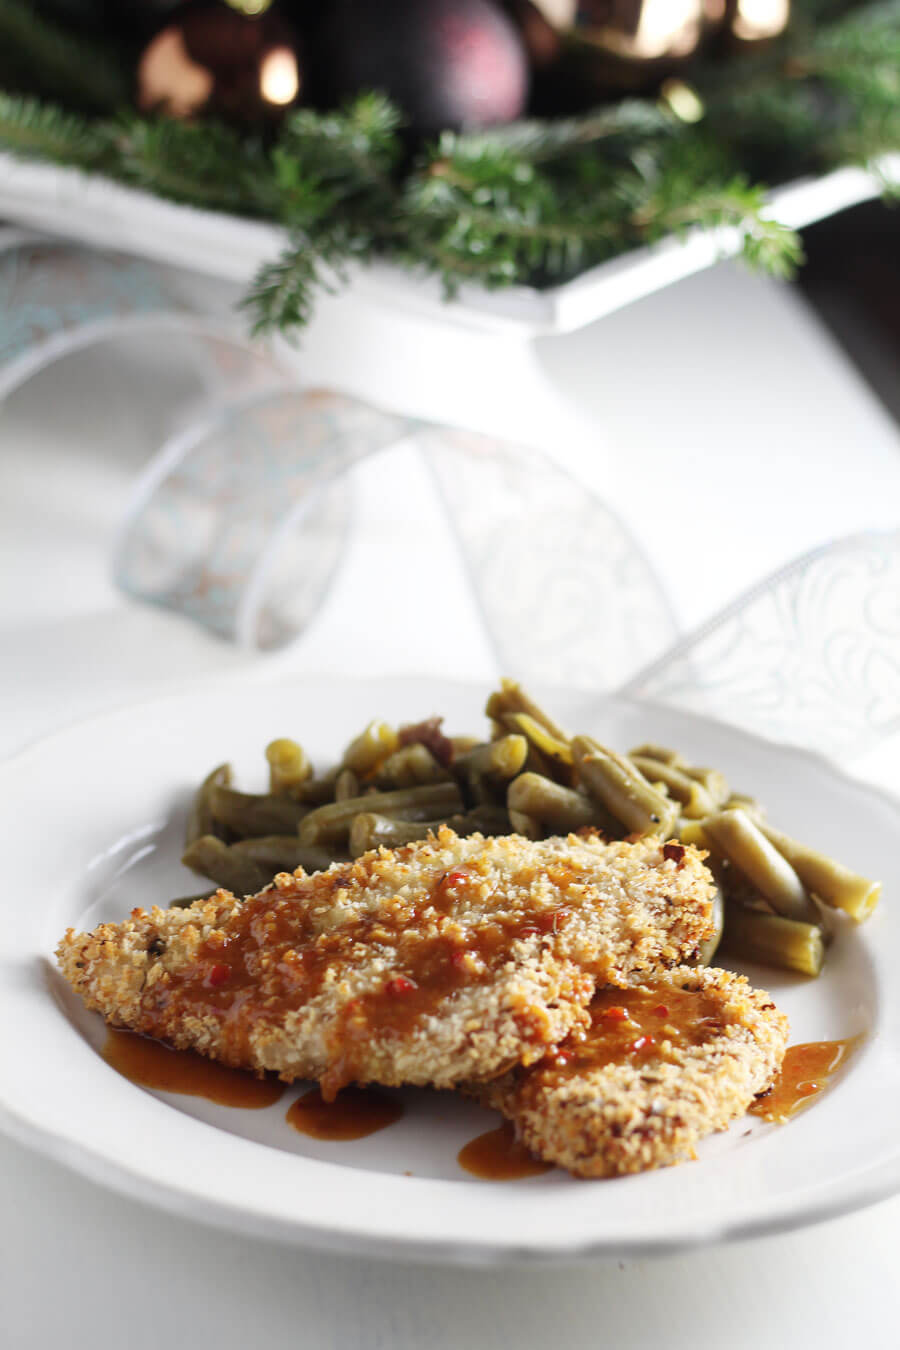 Savory and cripsy Panko Crusted Turkey Breast cutlets are a simple meal to enjoy. Serve alongside our easy sweet mustard soy sauce.